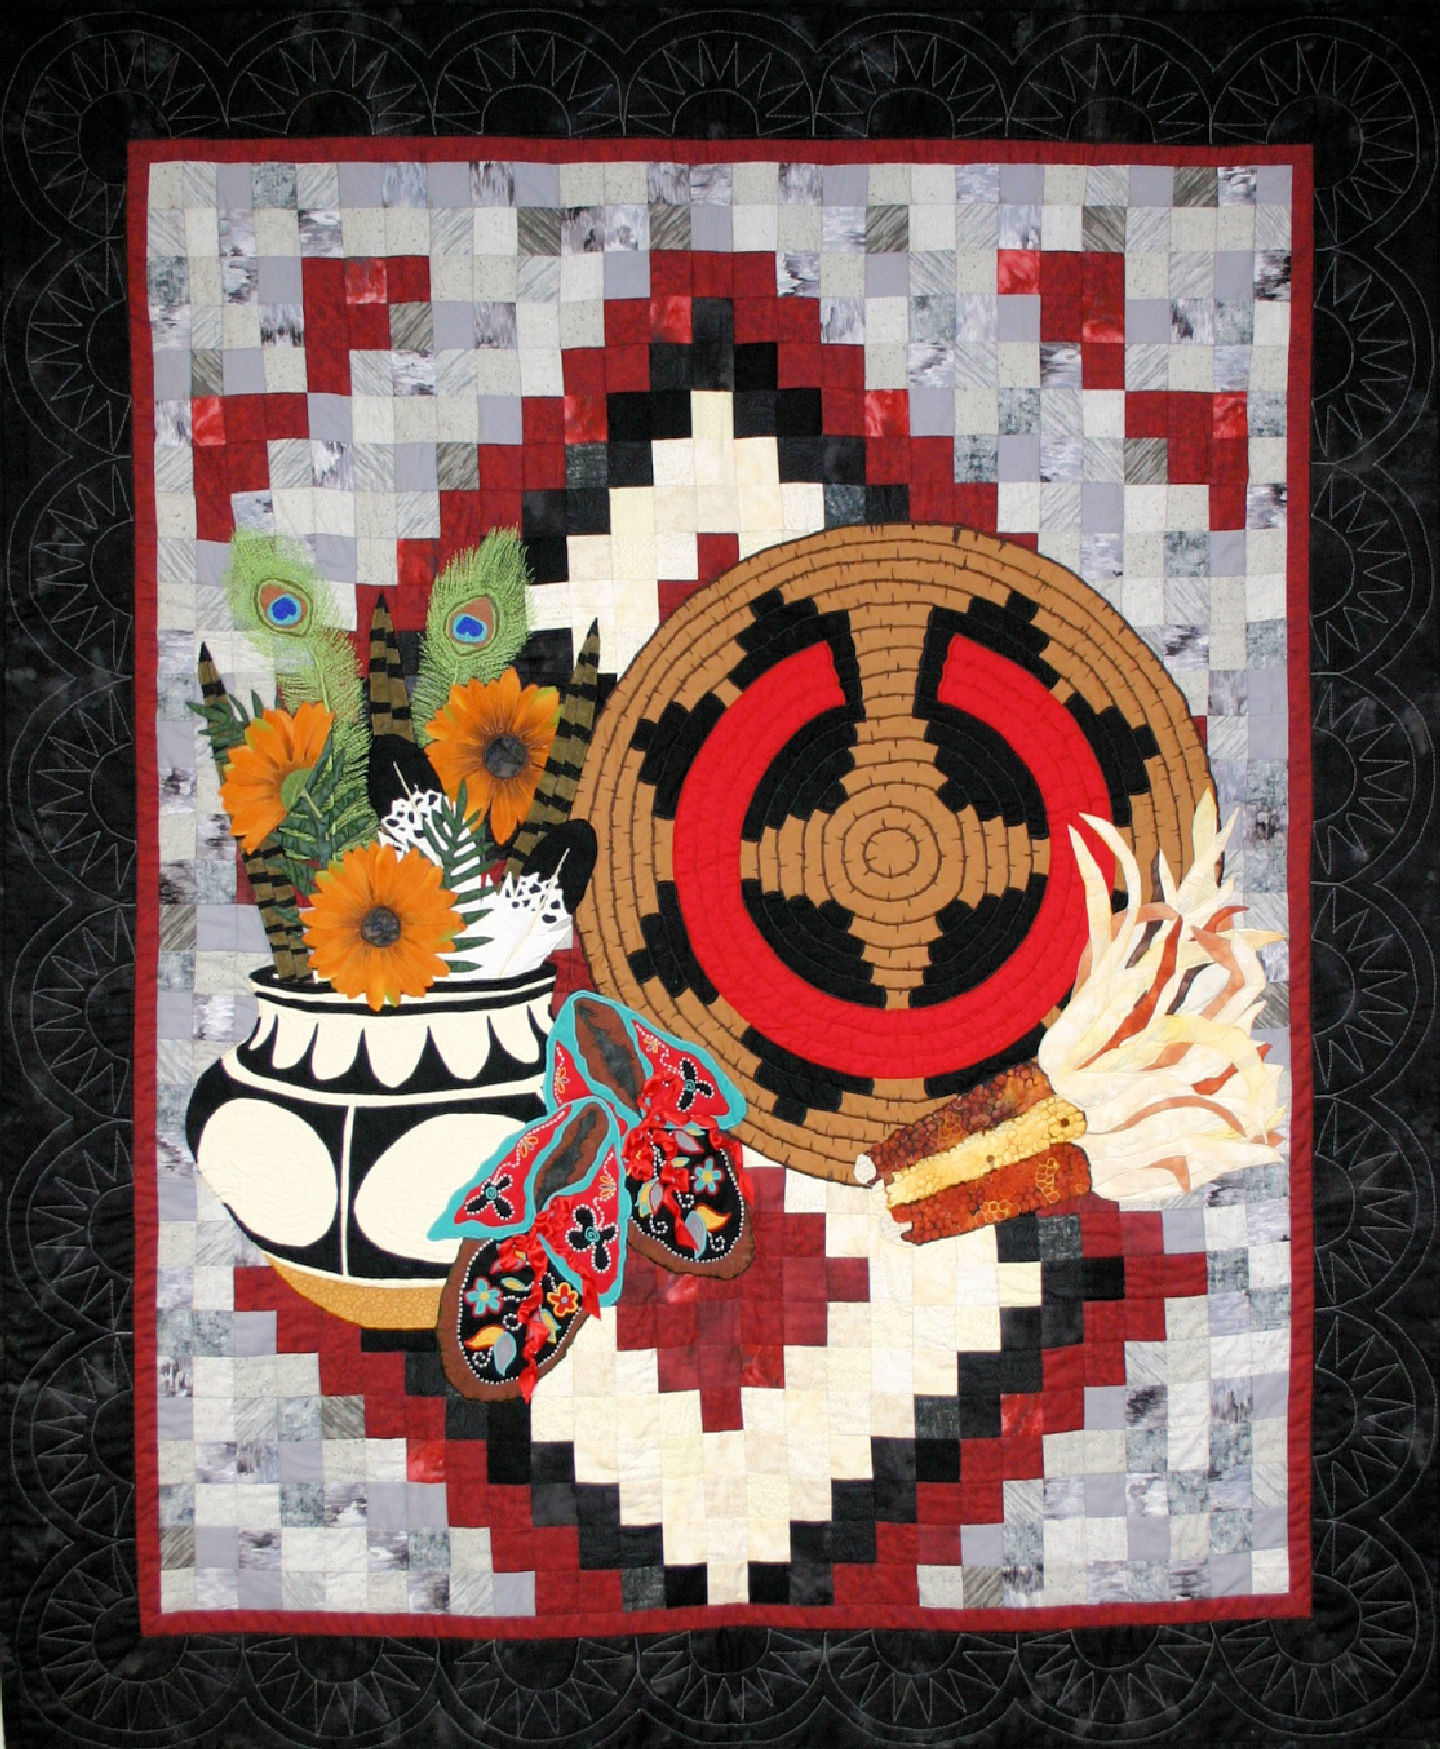 Navajo Still Life is a fiber art work with an Indian Basket, a black and white  navajo style bowl and some colorful dried indian corn and moccasins with detailed ribbon work backed by a navajo style rug. This work was a juried finalist  at the Houston International Quilt Festival in 2007